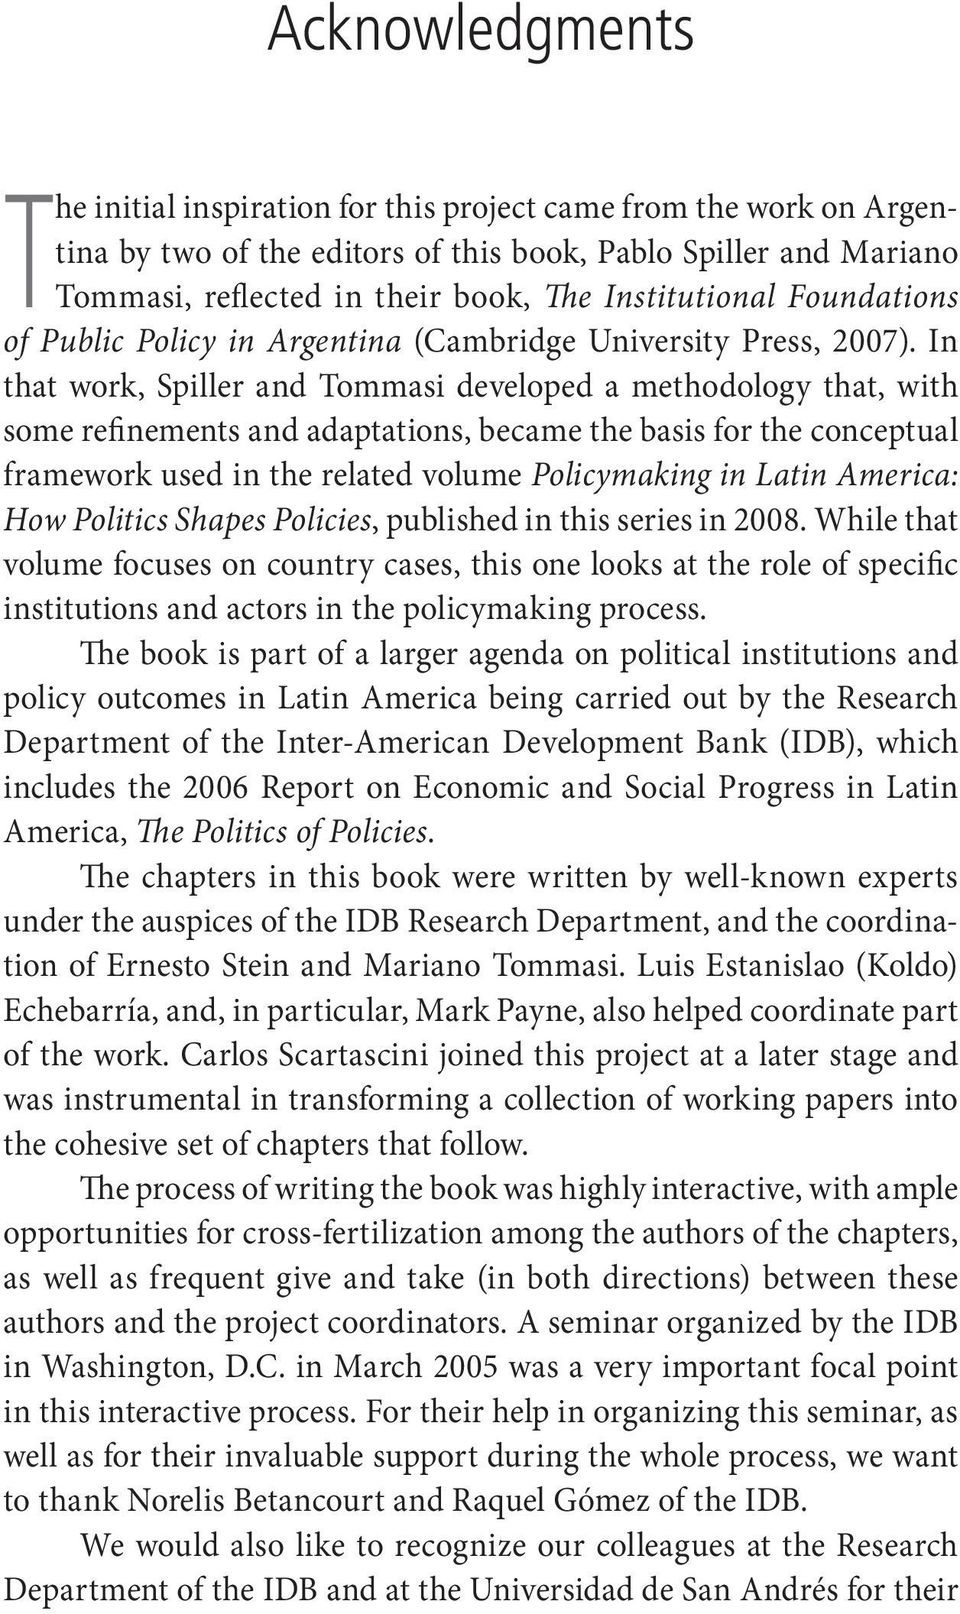 In that work, Spiller and Tommasi developed a methodology that, with some refinements and adaptations, became the basis for the conceptual framework used in the related volume Policymaking in Latin